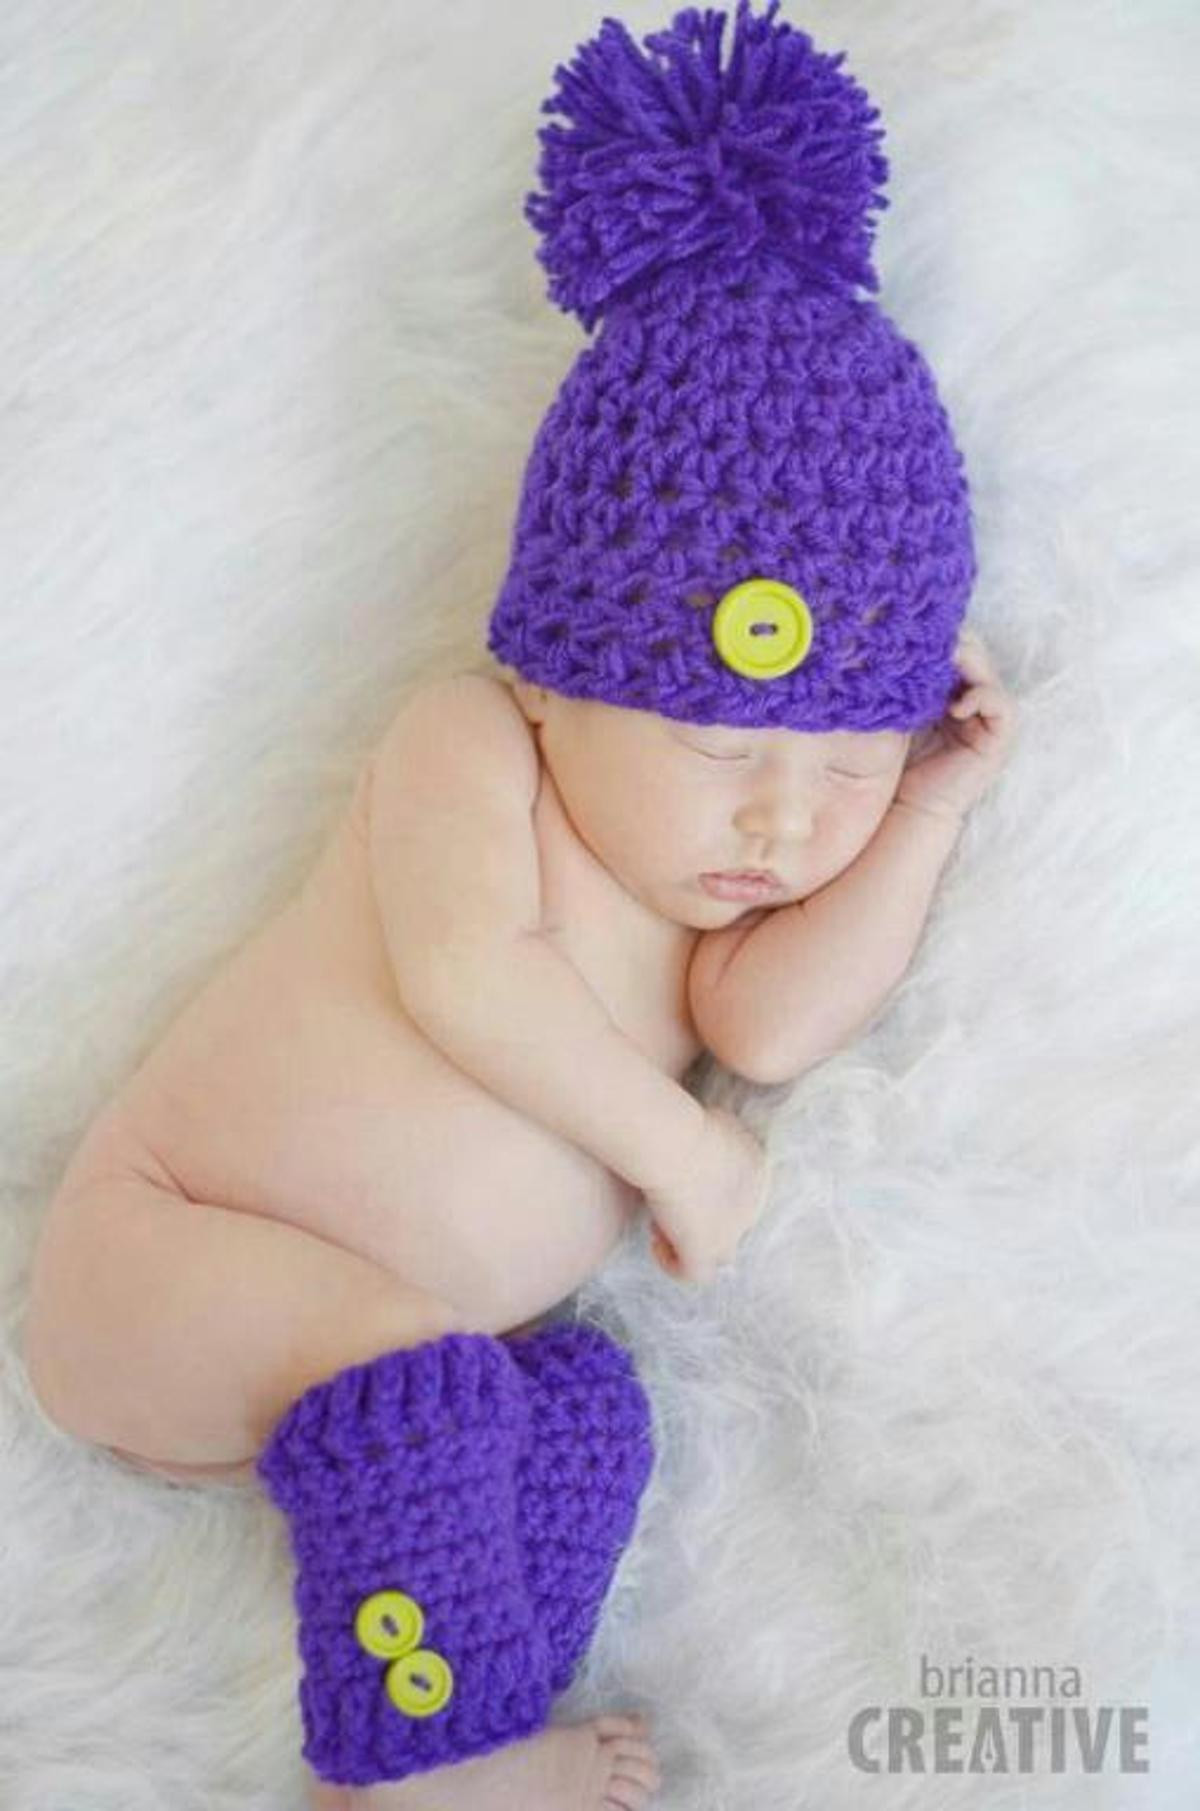 Best Of 12 Newborn Crochet Hat Patterns to Download for Free Free Crochet Patterns for Newborns Of Unique 40 Photos Free Crochet Patterns for Newborns